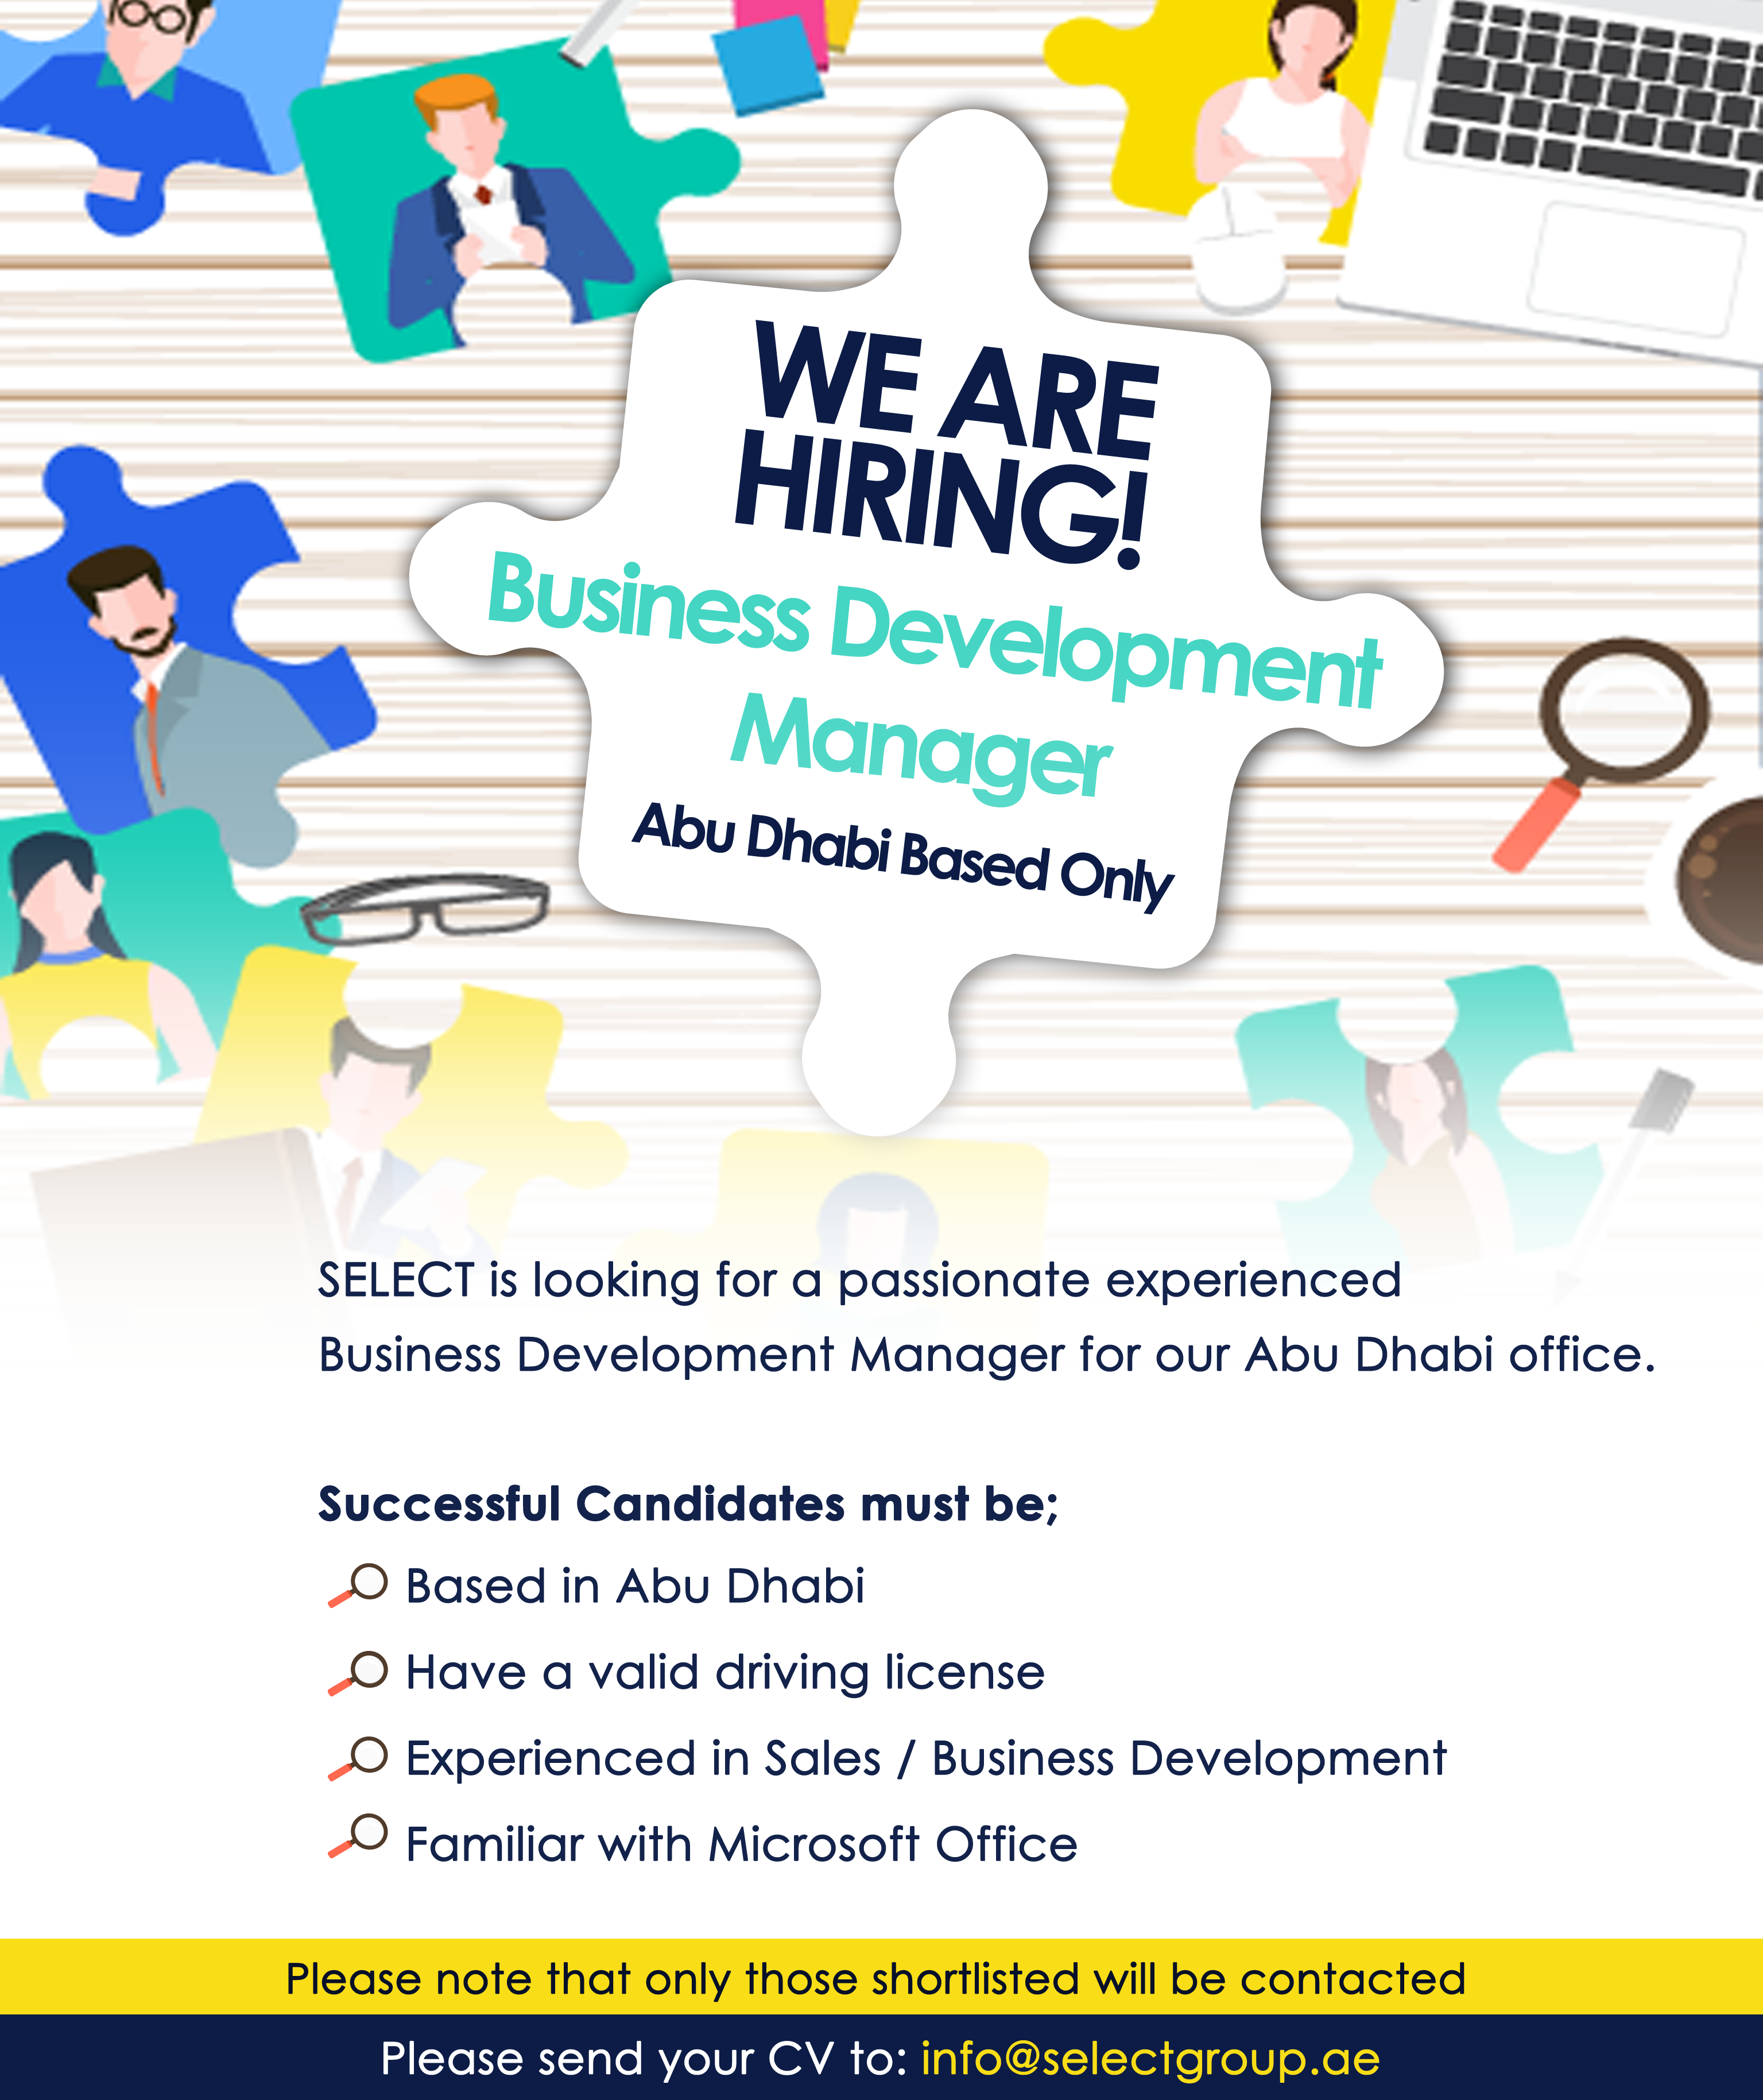 Visit www.selecttraining.ae/careers/ for more information